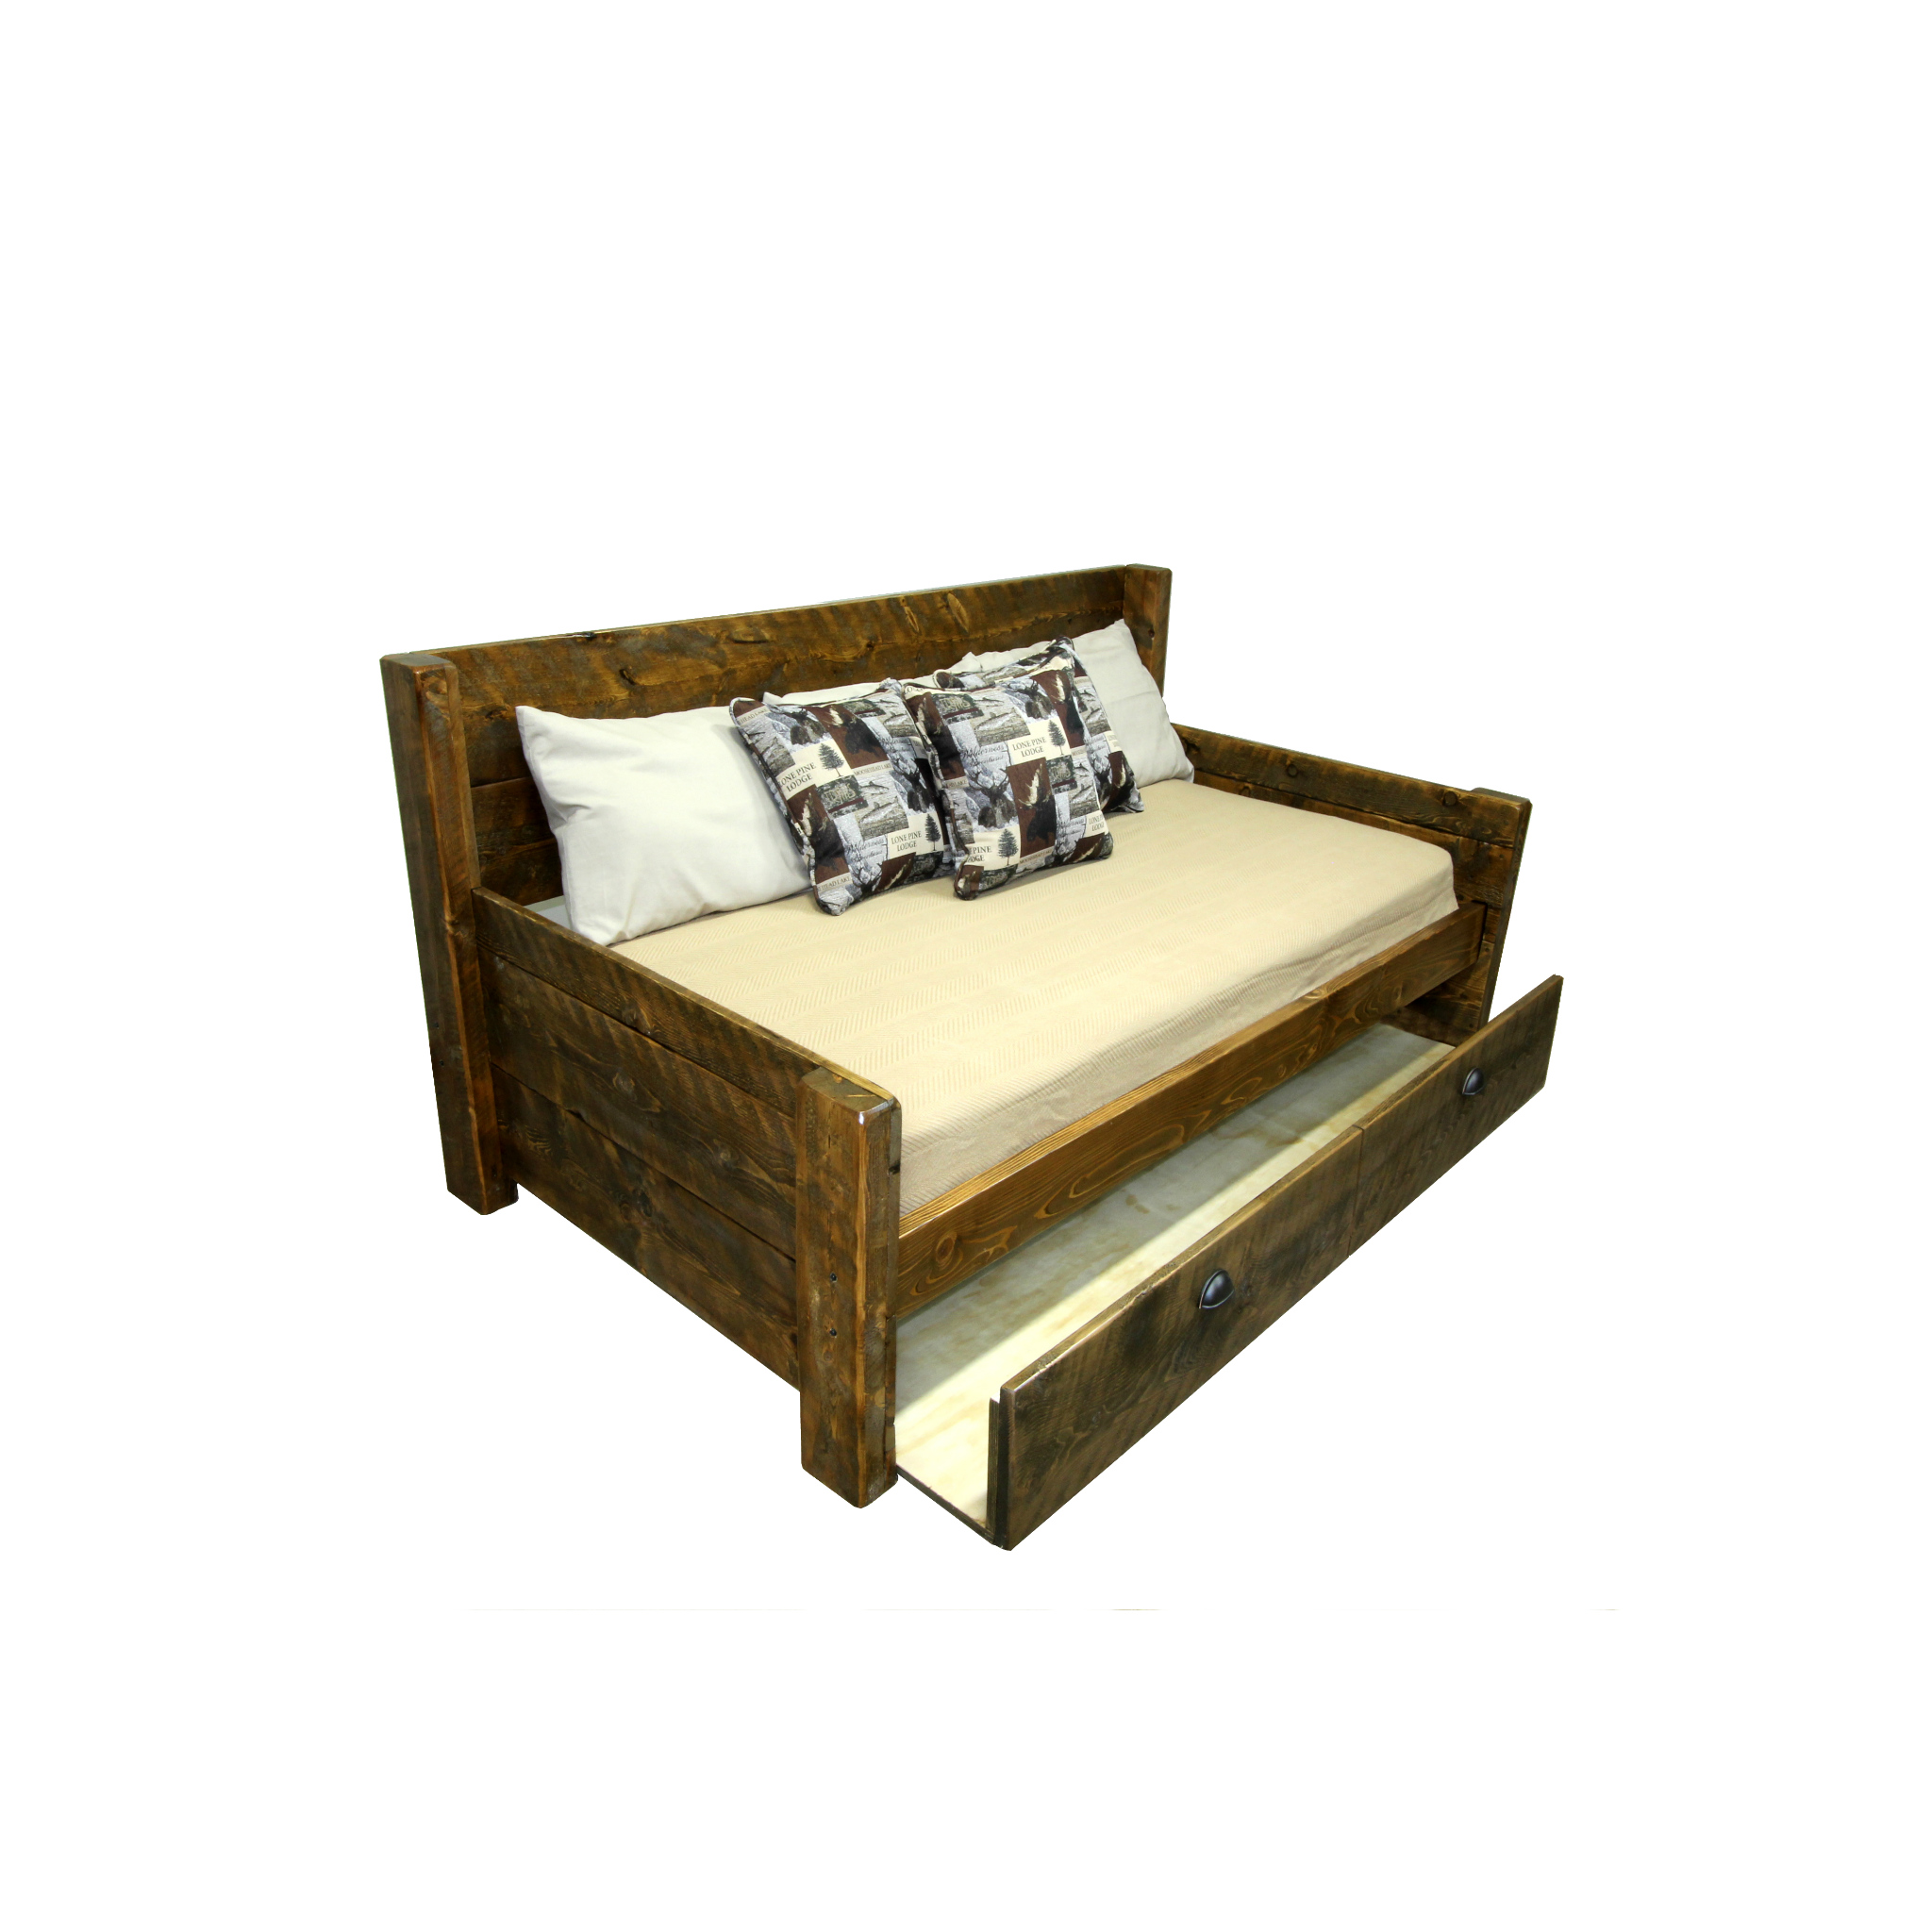 bitterroot day bed  Simple day bed with a pullout trundle. Shown in rough sawn - rustic brown.